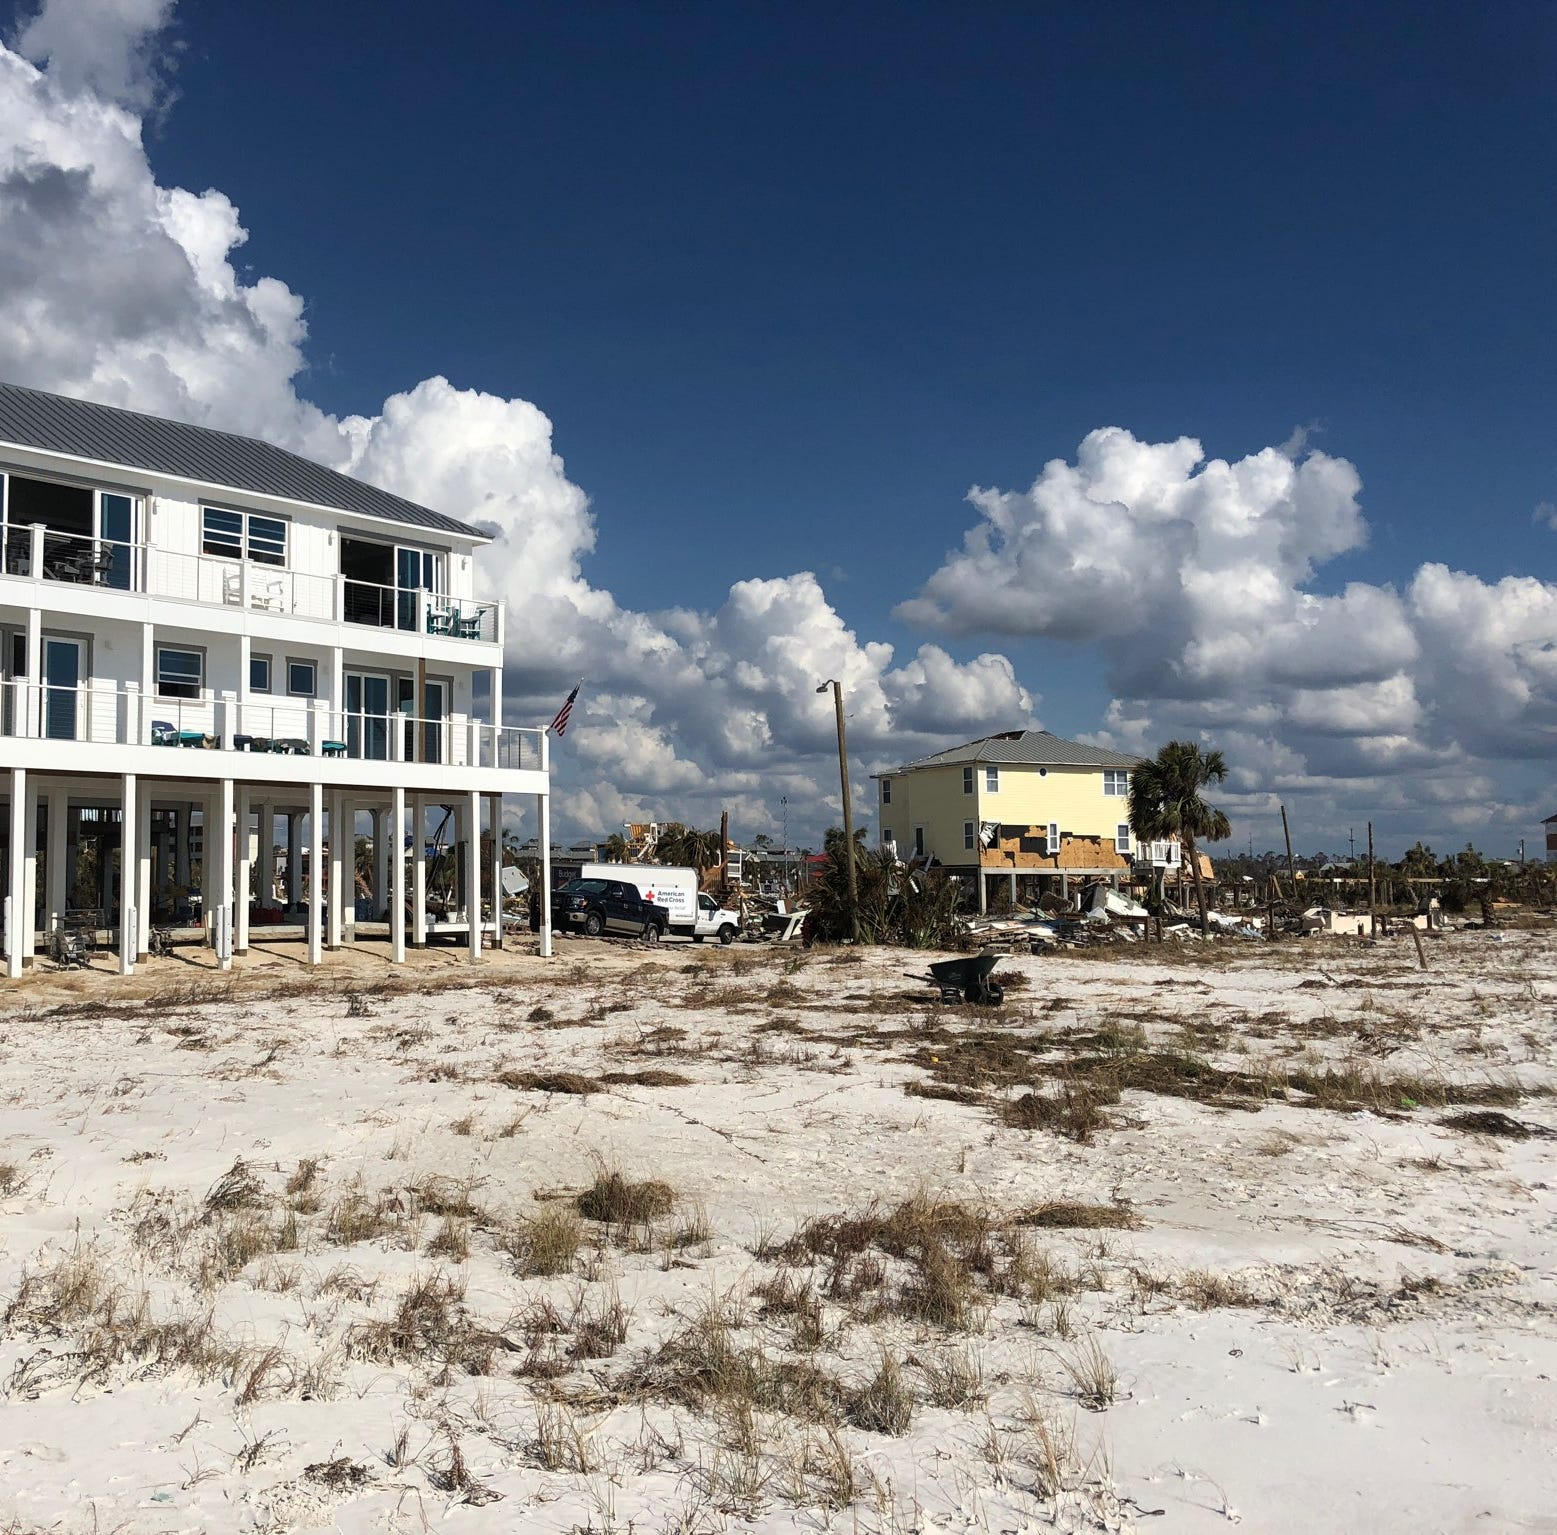 Mexico Beach house stands like a fortress amid Hurricane Michael's destruction